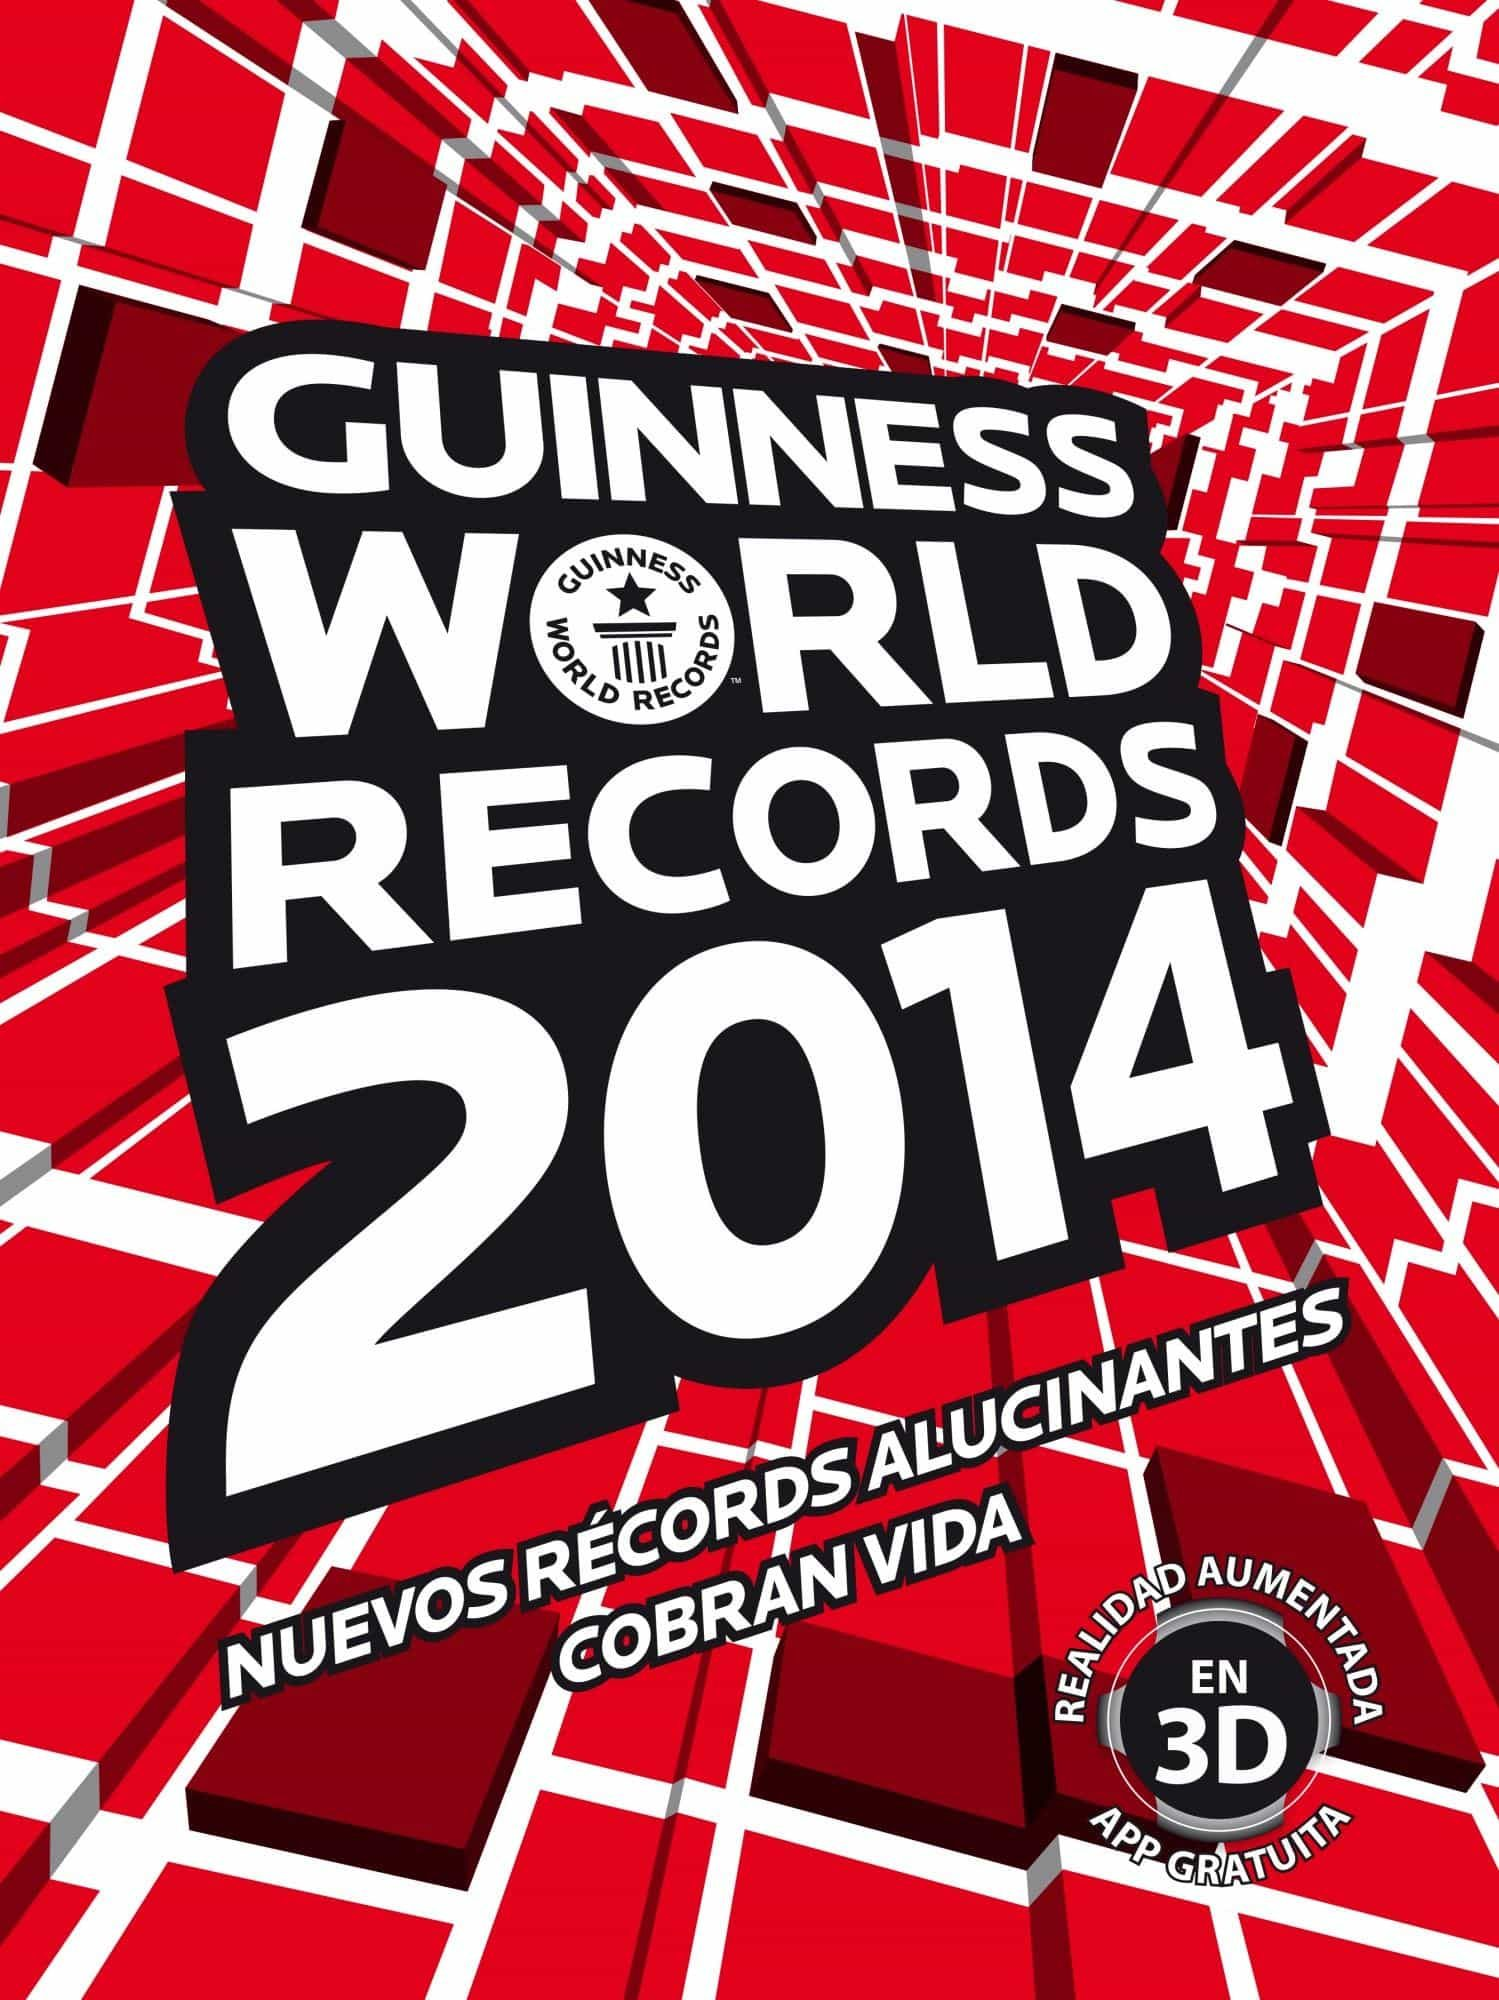 Libro Record Guinness 2017 Guinness World Records 2014 Vv Aa Comprar Libro